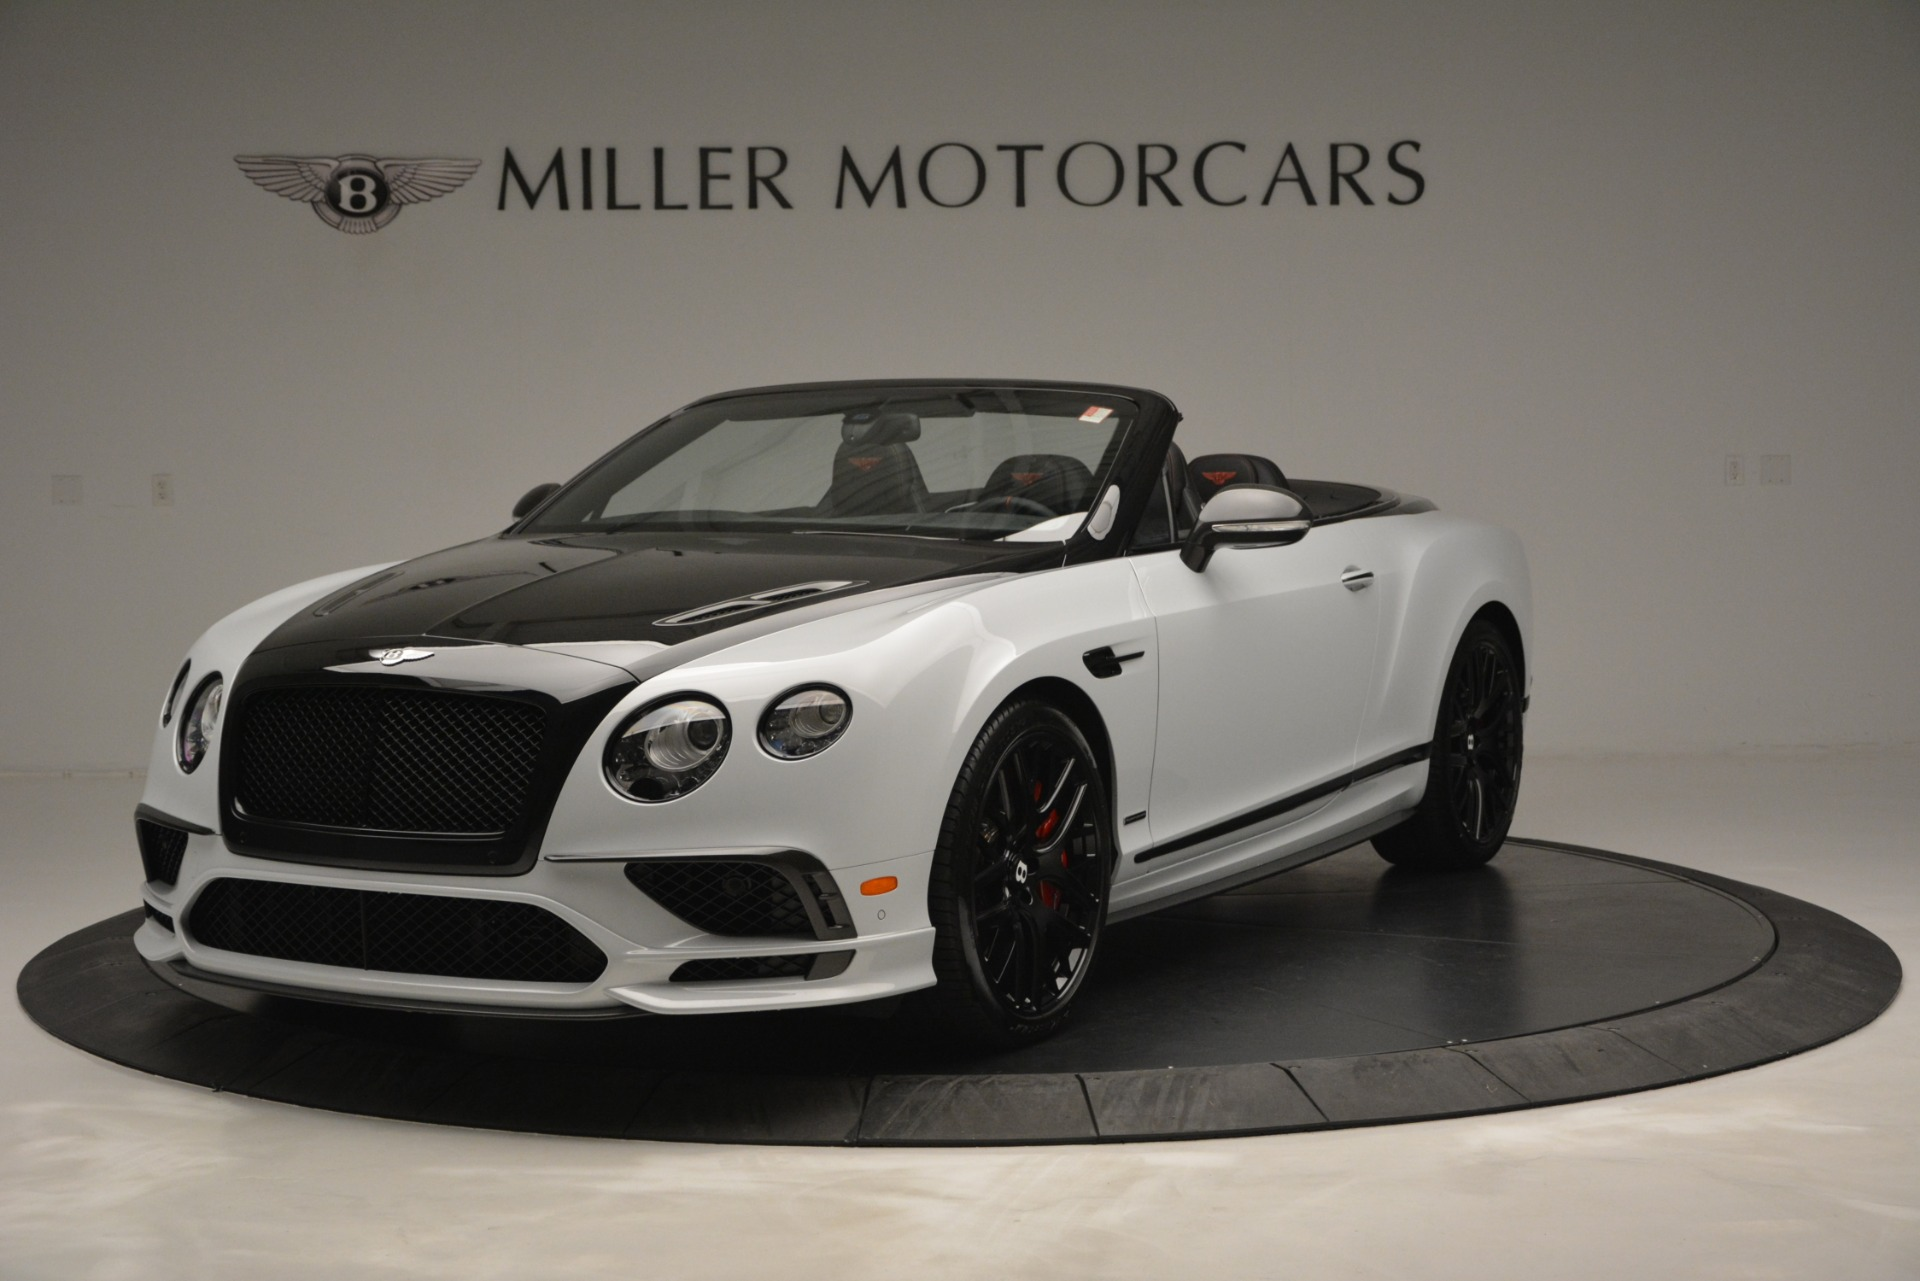 New 2018 Bentley Continental GT Supersports Convertible for sale Sold at Pagani of Greenwich in Greenwich CT 06830 1